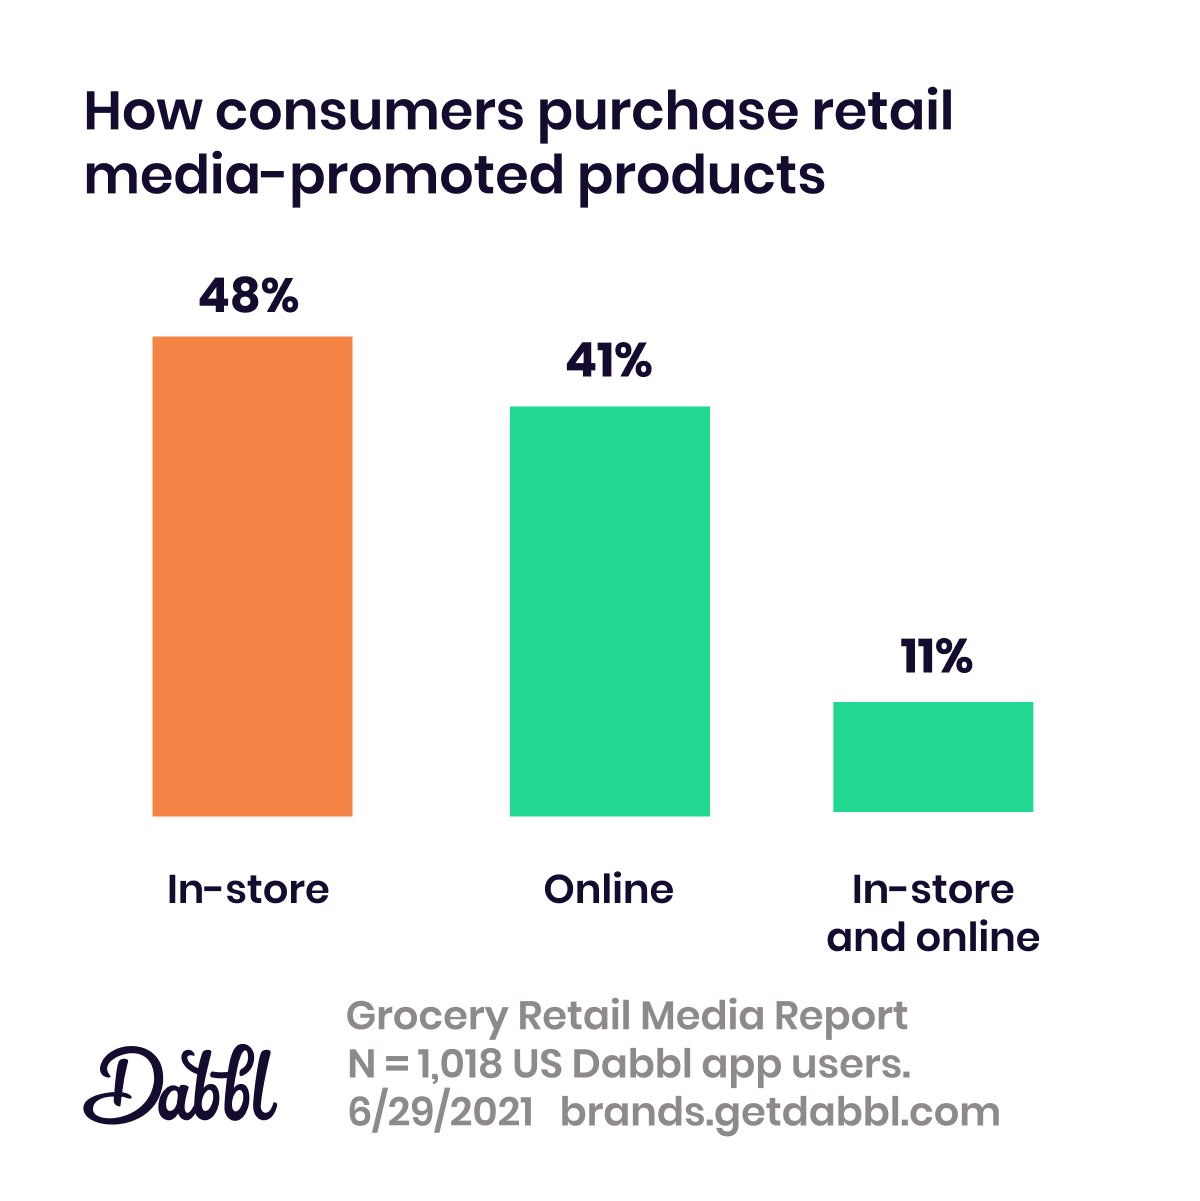 Dabbl Grocery Retail Media Report: purchase channels